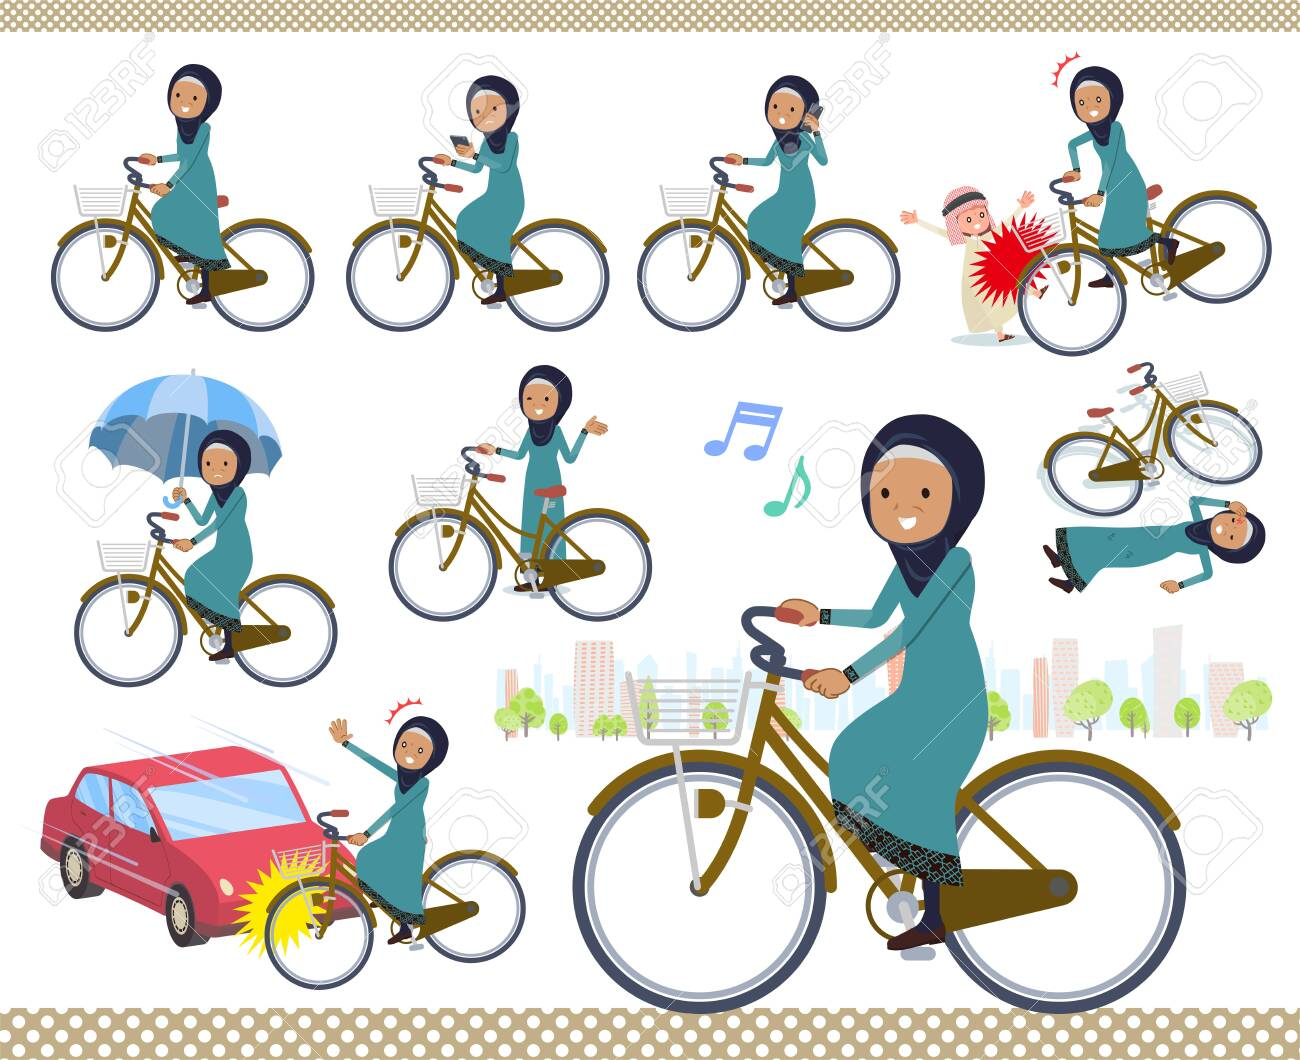 A set of old women wearing hijab riding a city cycle.There are actions on manners and troubles.It's vector art so it's easy to edit. - 124040206